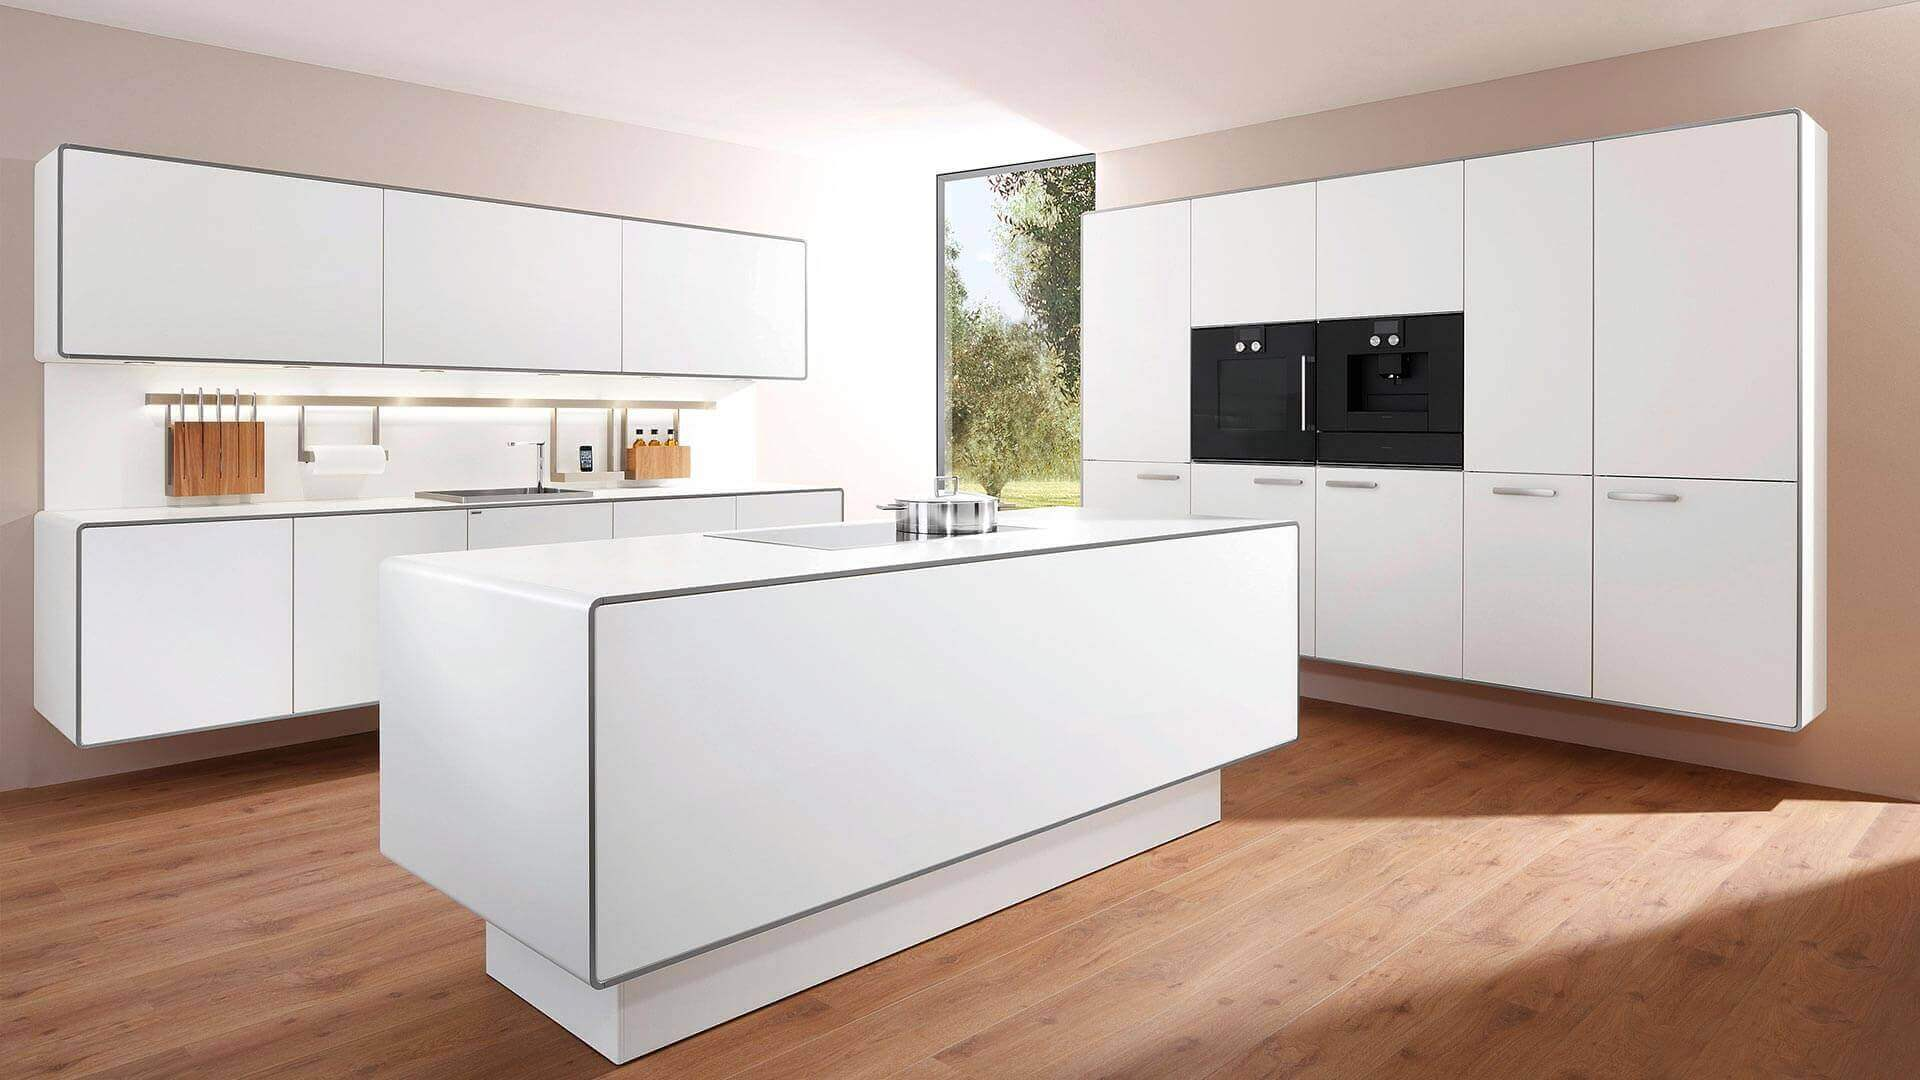 Modular KItchen in Coimbatore - Bluefox Interio 95140 19199